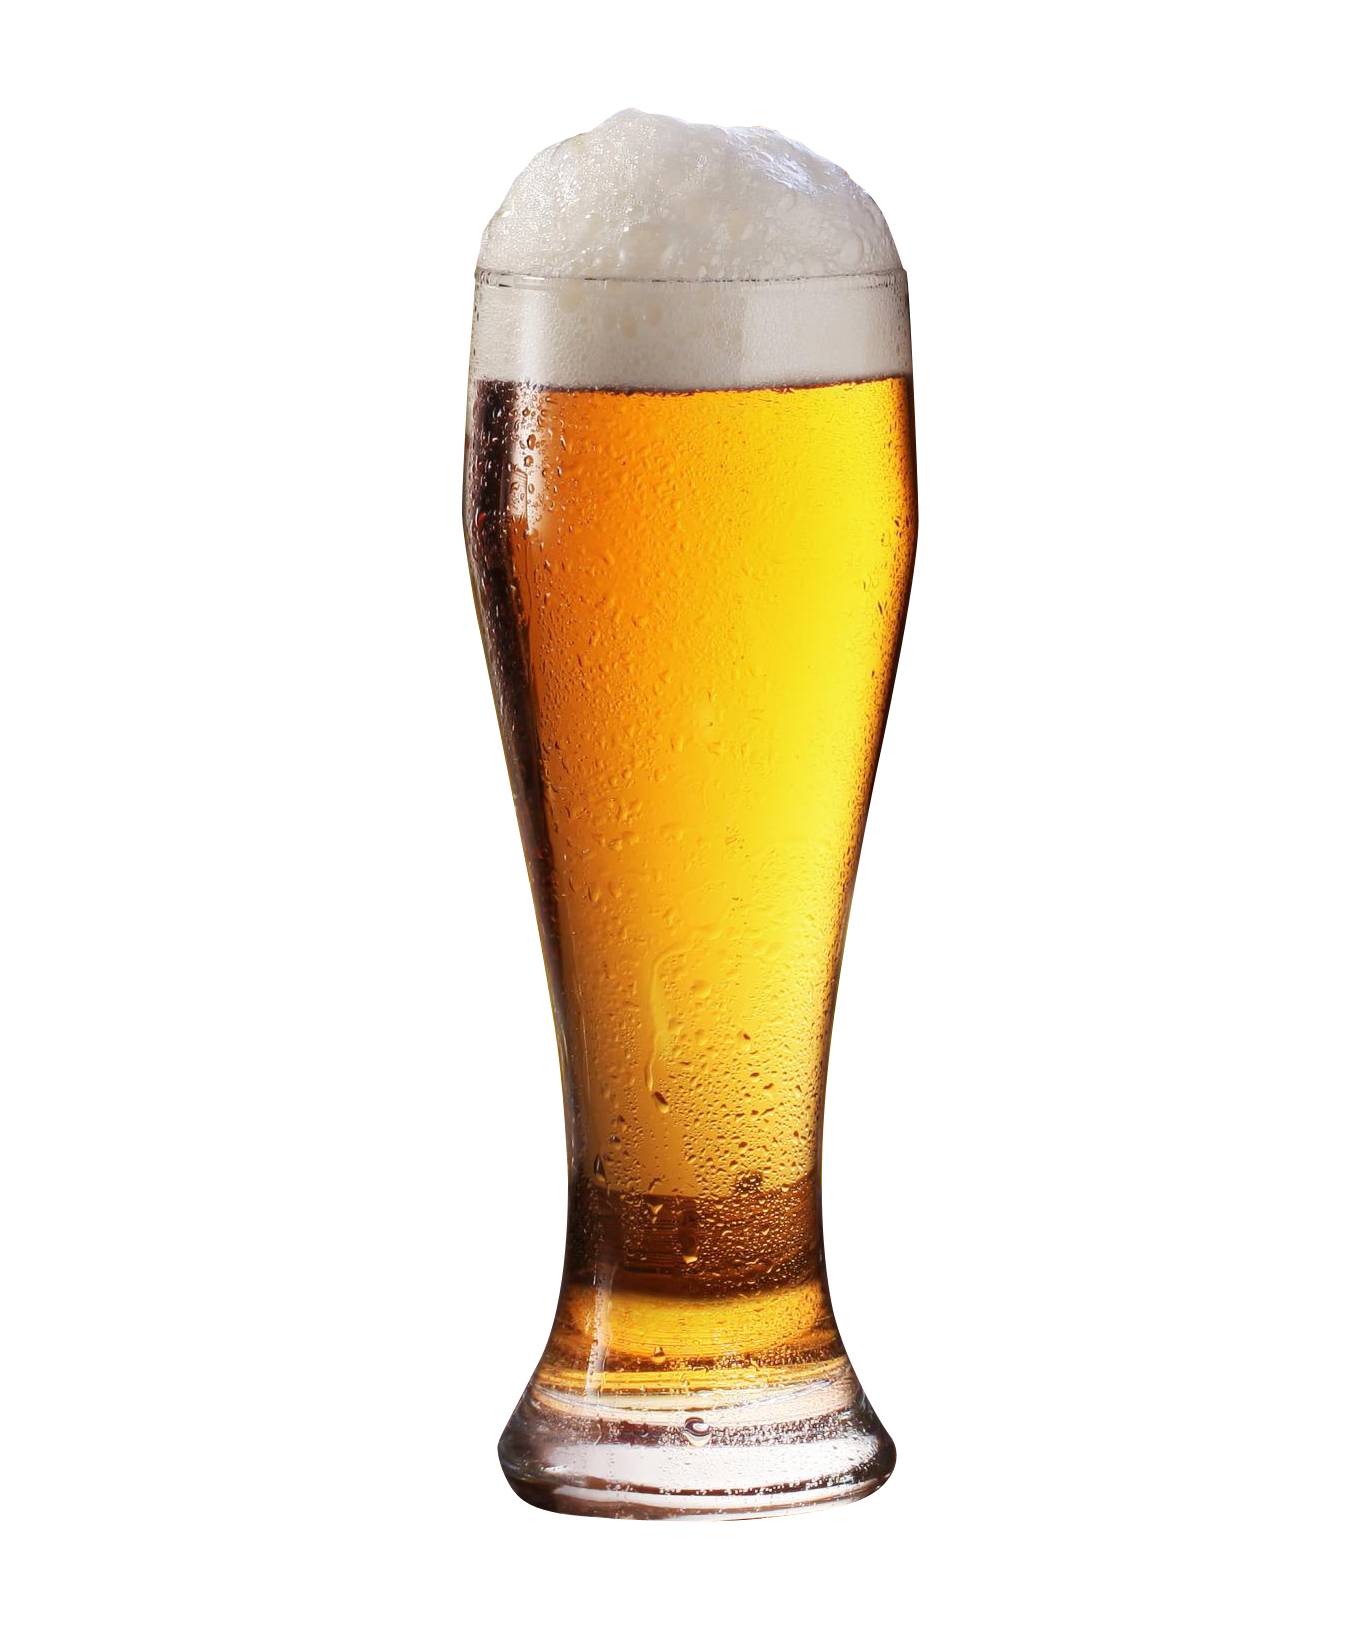 Beer Glass PNG Image.